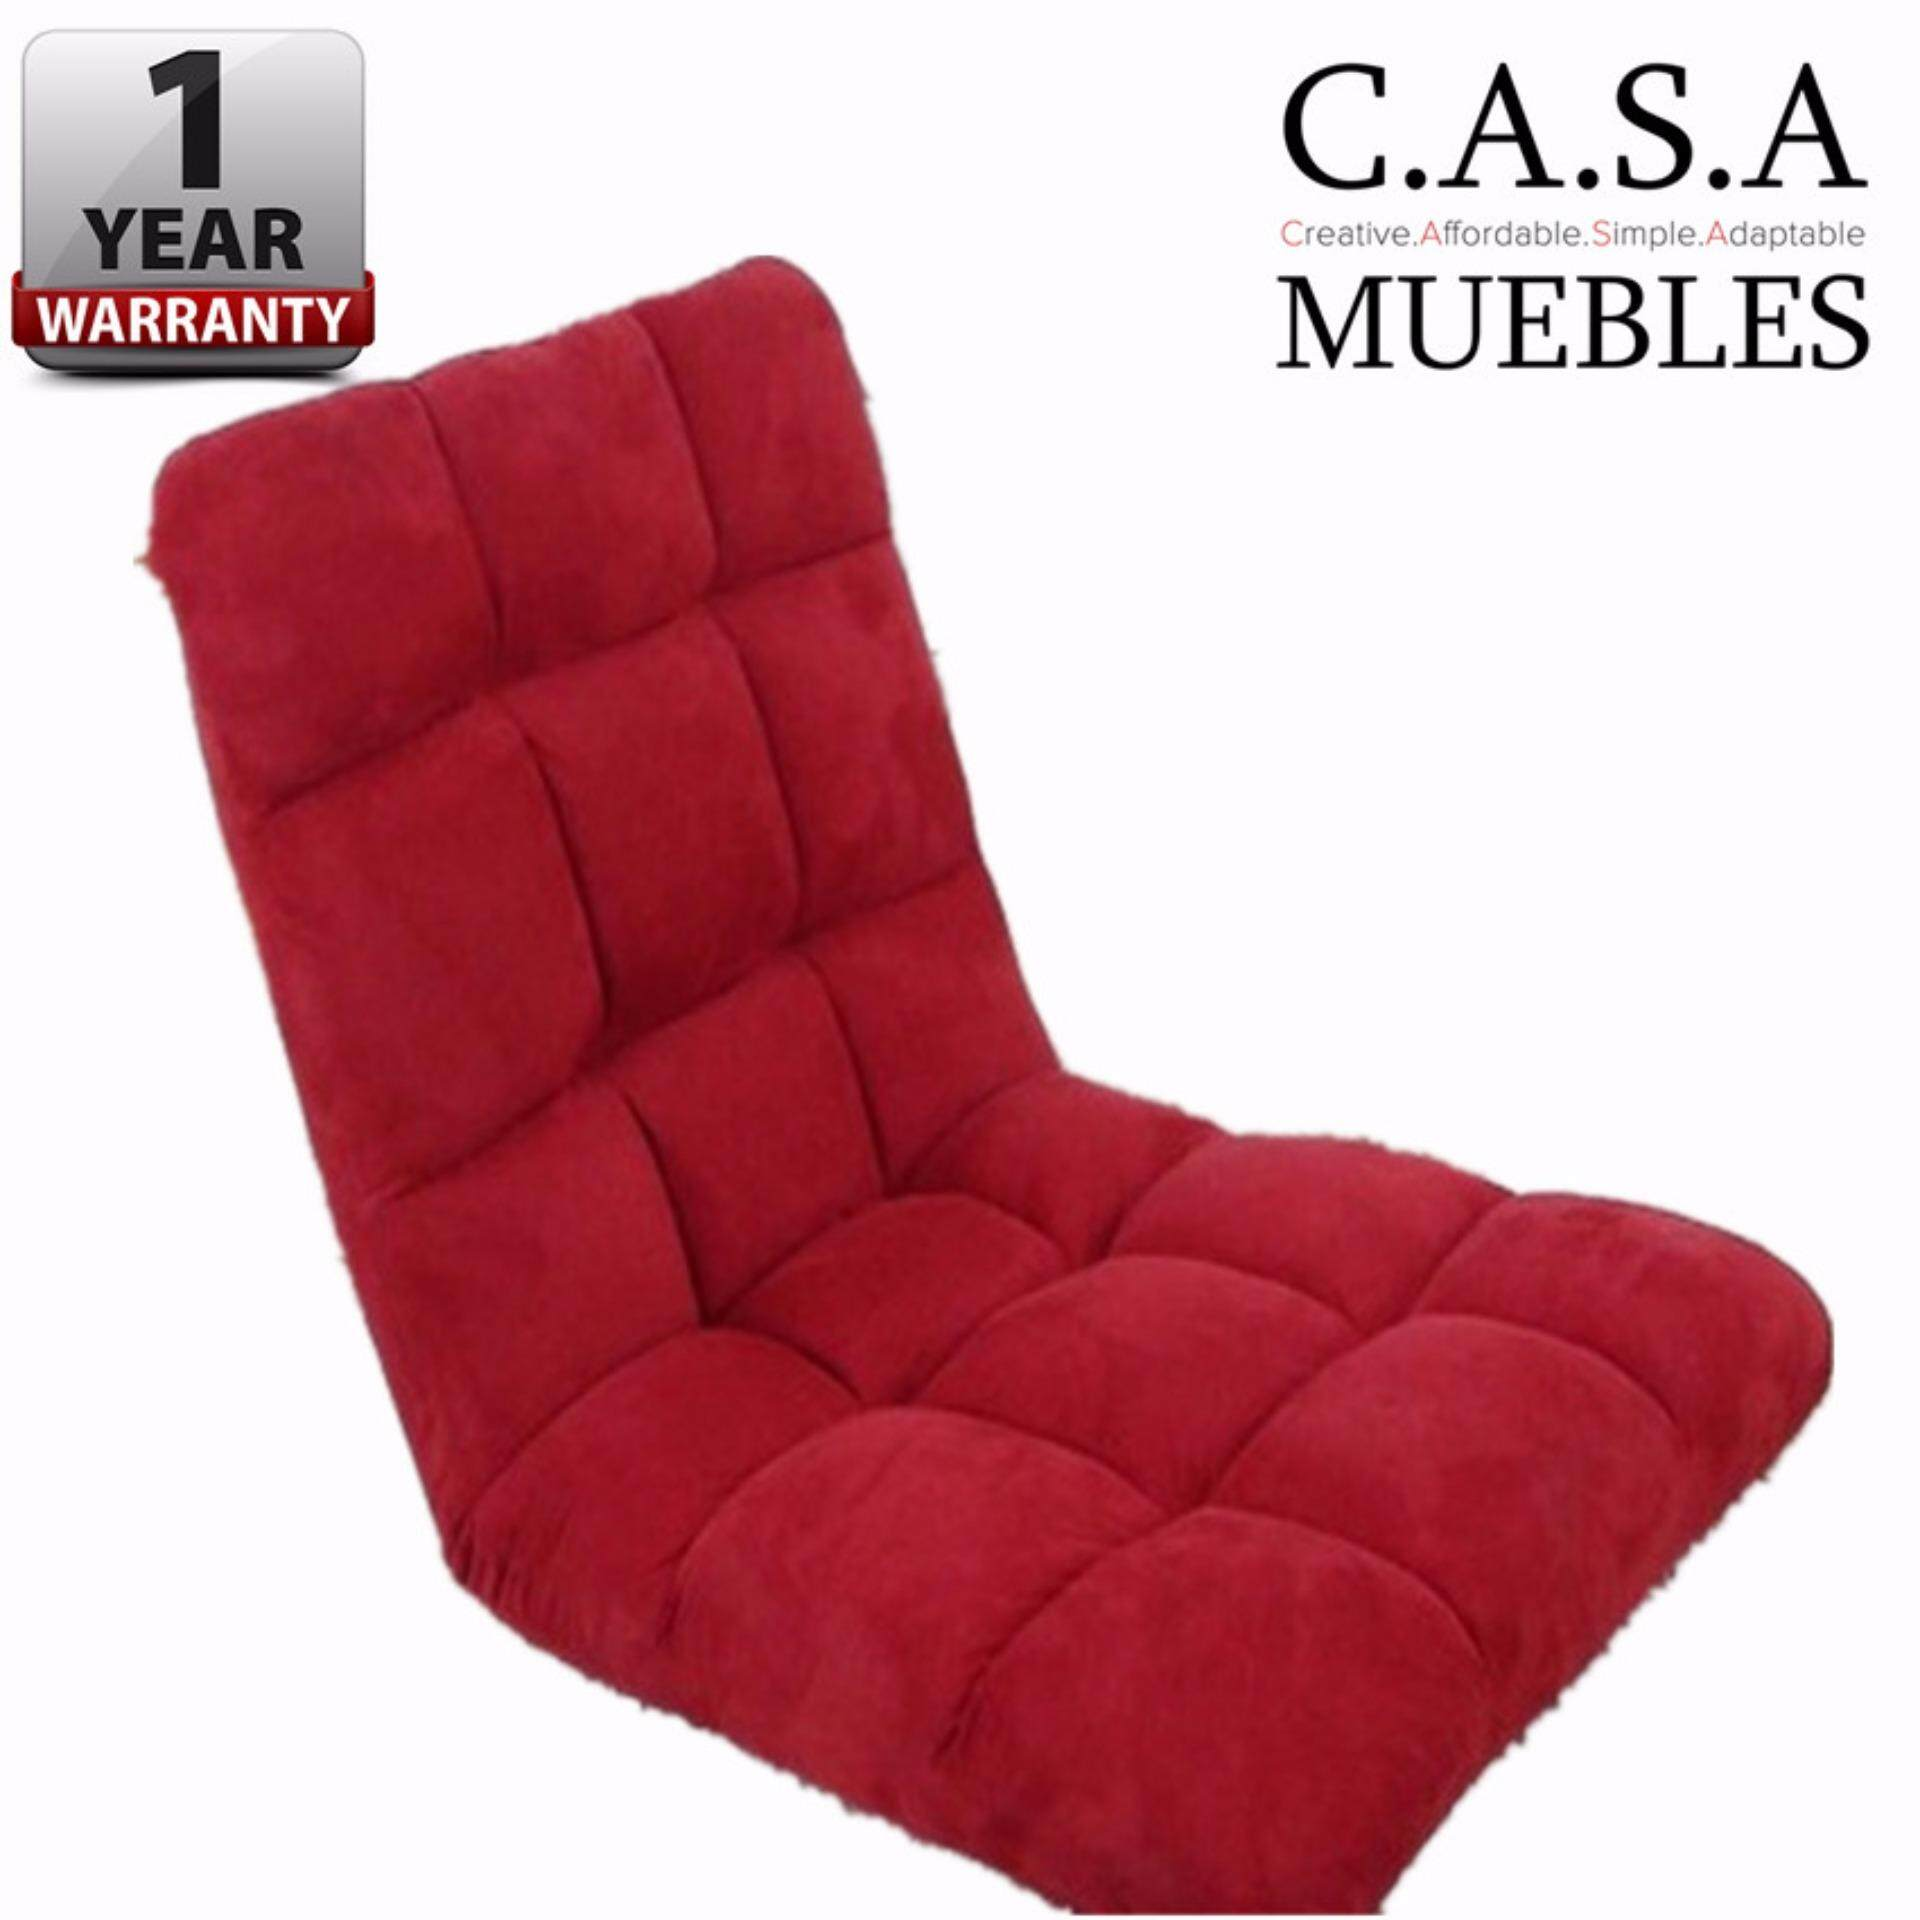 casa-muebles-foldable-adjustable-reclining-futon-short-sofa-chair-80cm-x-40cm-x-12cm-1507114957-204476-a0a4fca93ea31276b1fb59a7921ad1d5